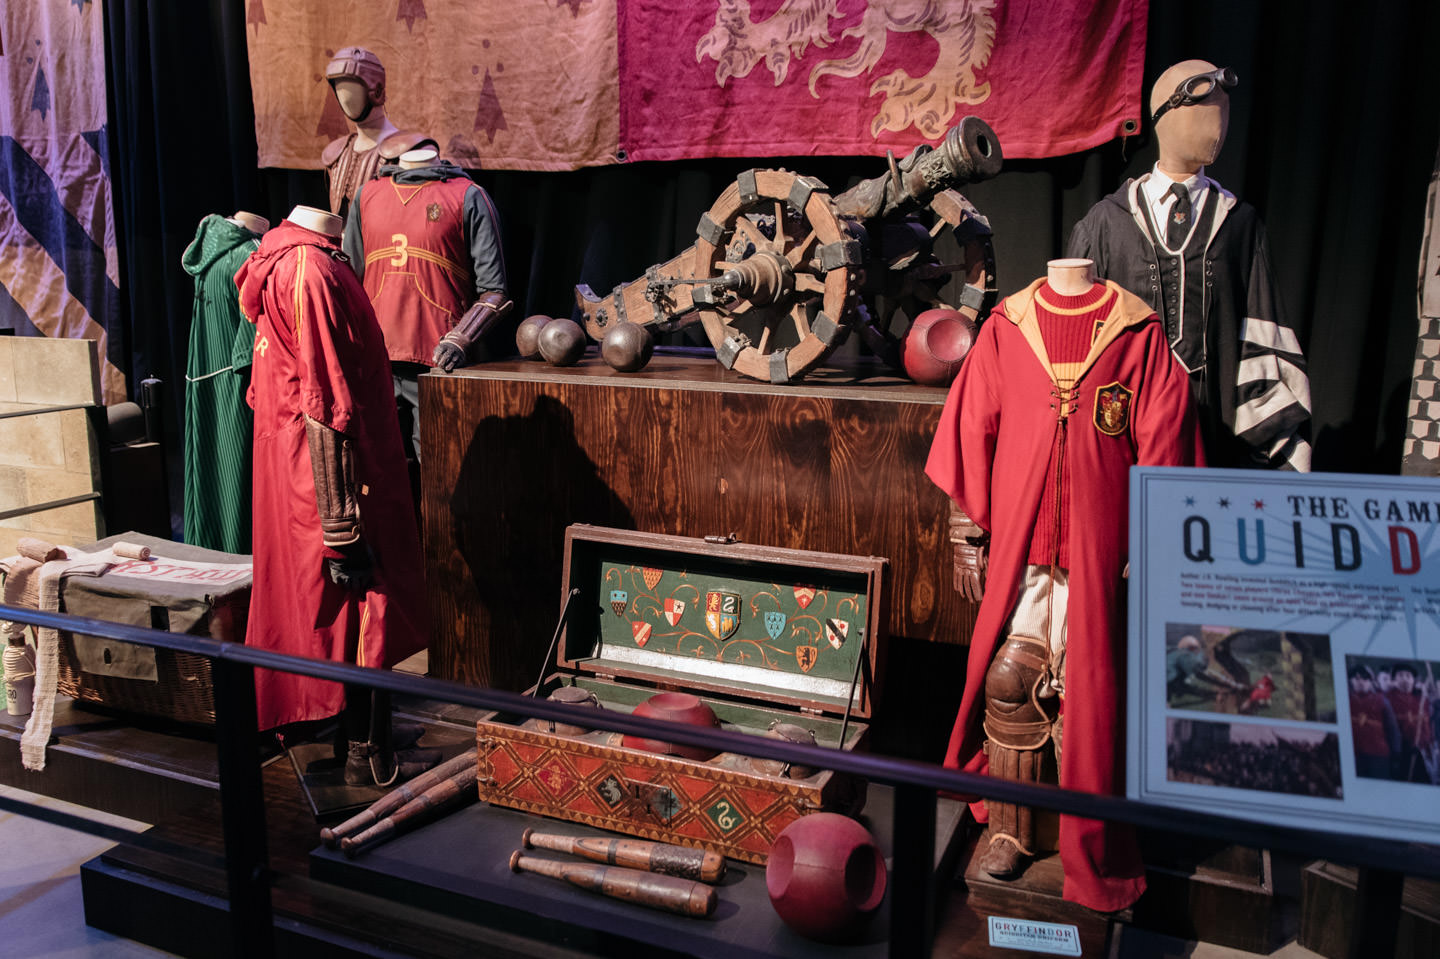 Blog-Mode-And-The-City-Lifestyle-Visite-Studios-Harry-Potter-Londres-15